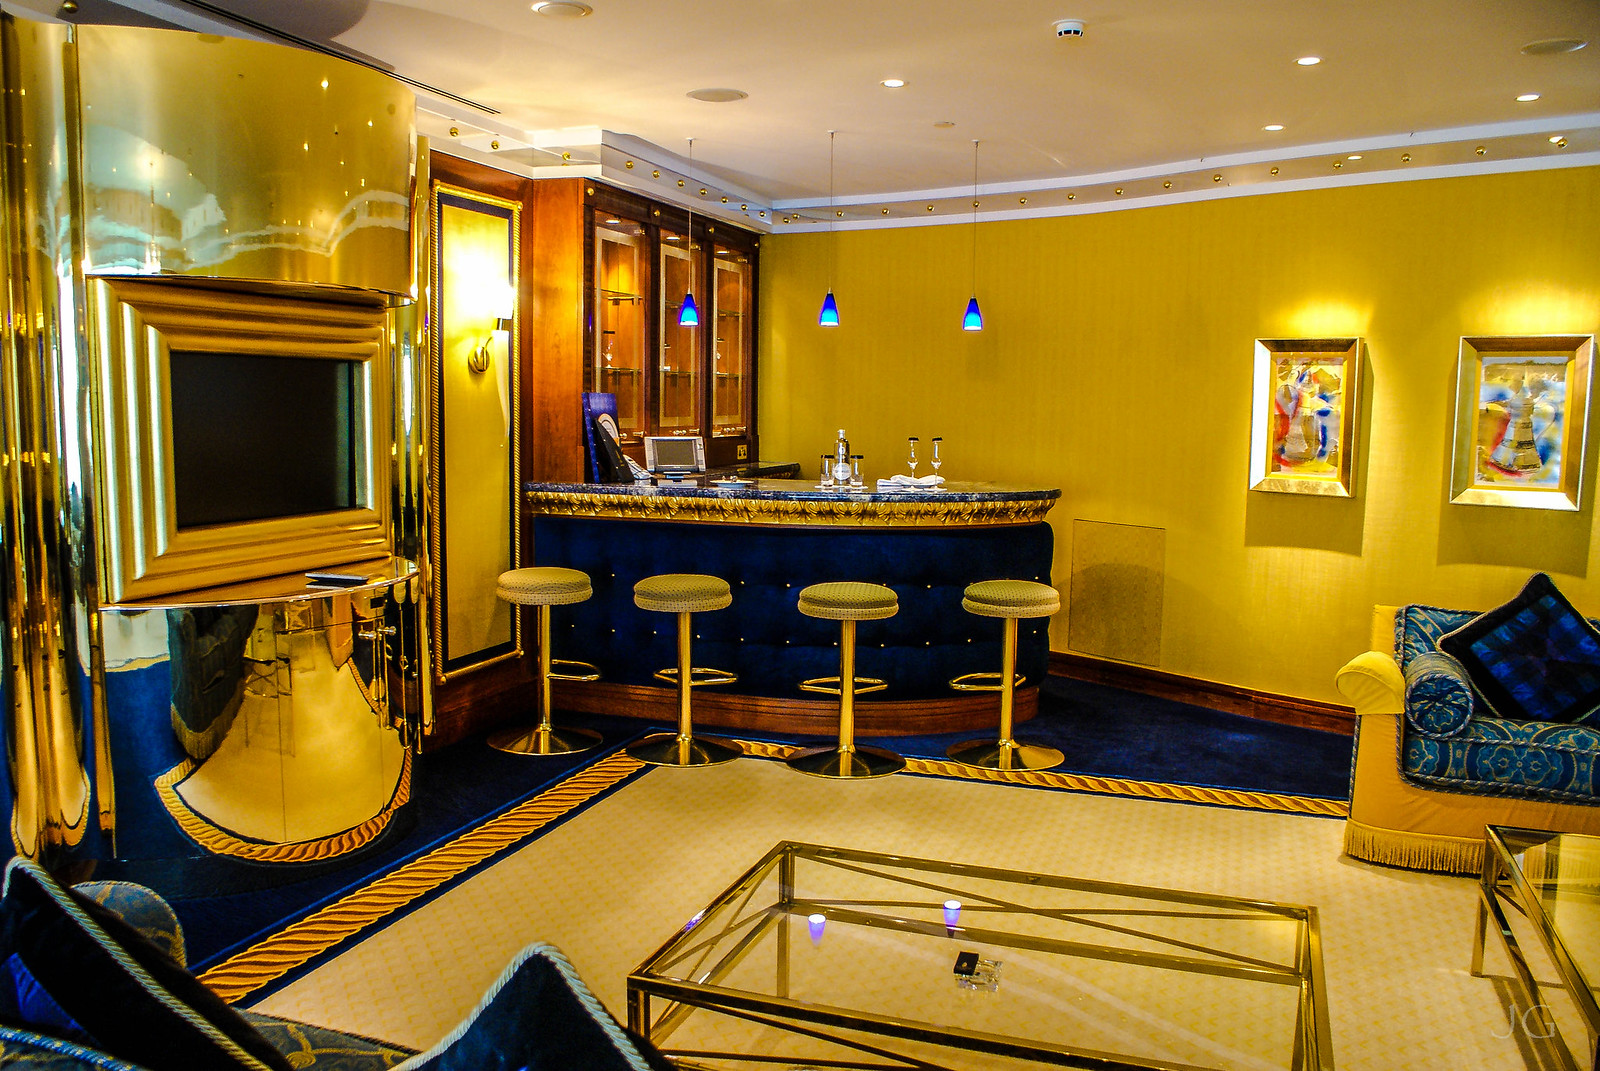 Burj al arab suite by j g via flickr burj al arab for Burj al arab suite